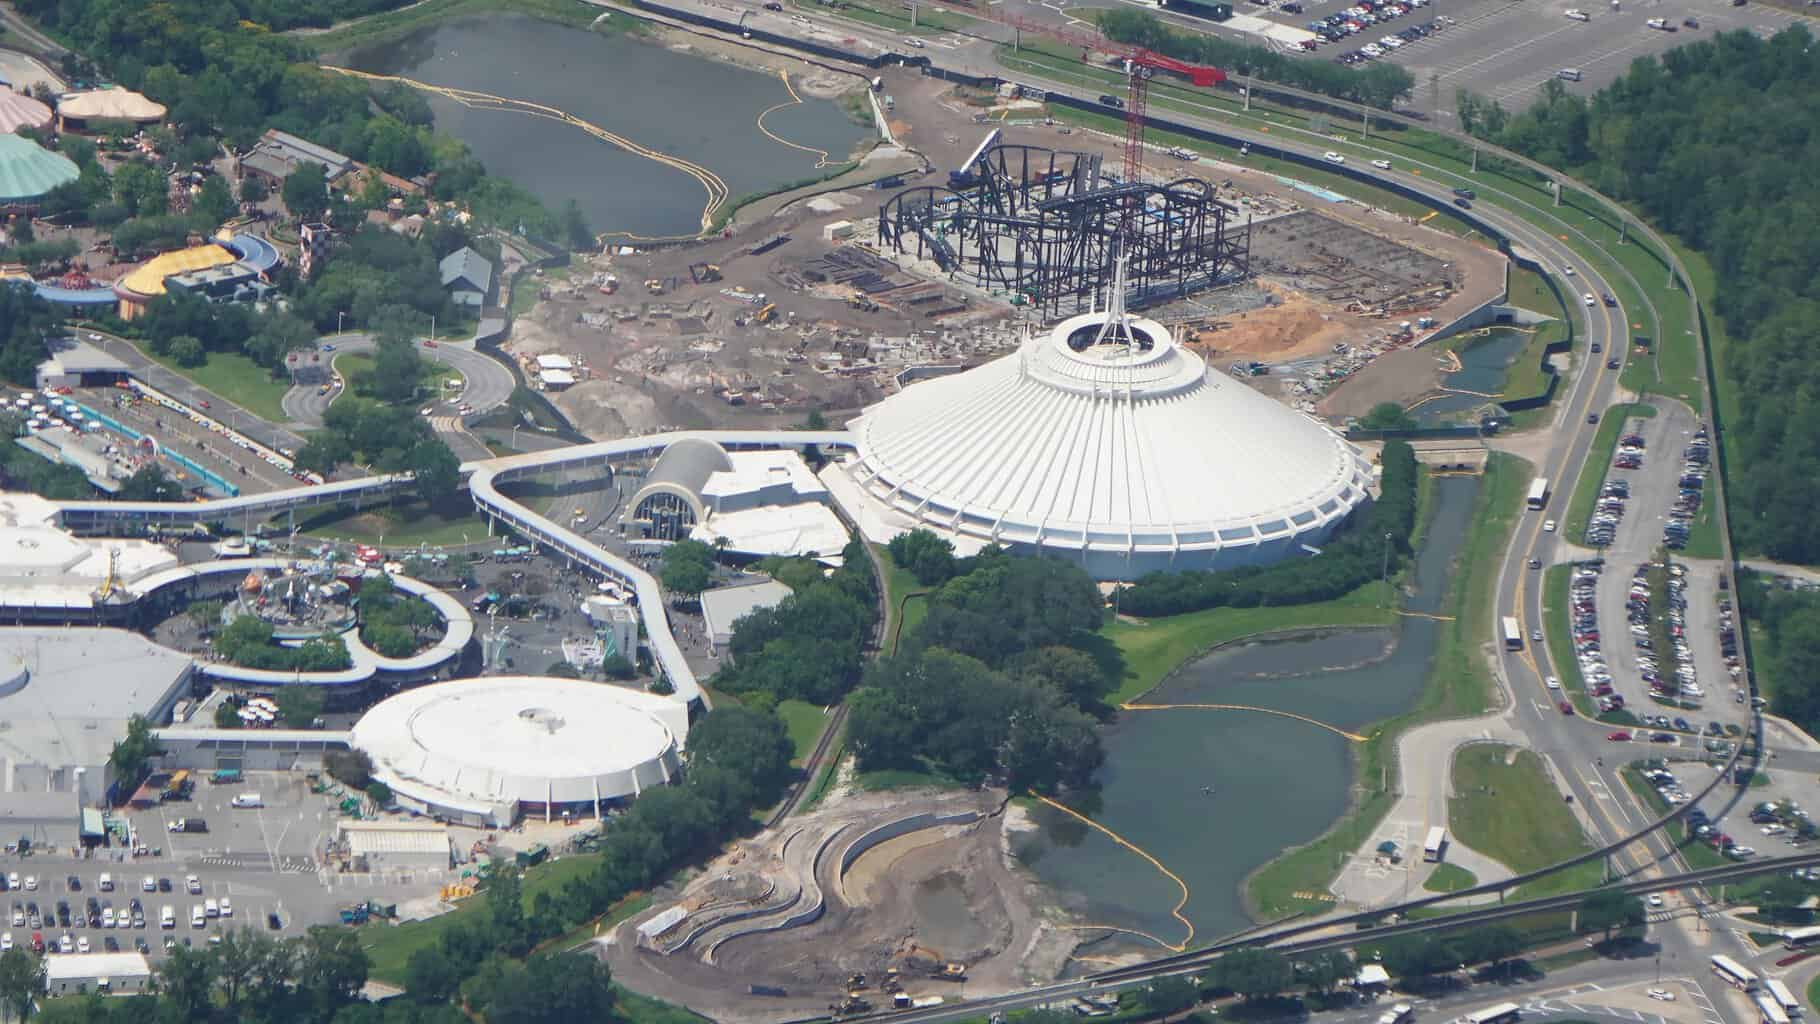 aerial photo of Space Mountain and TRON coaster July 2019